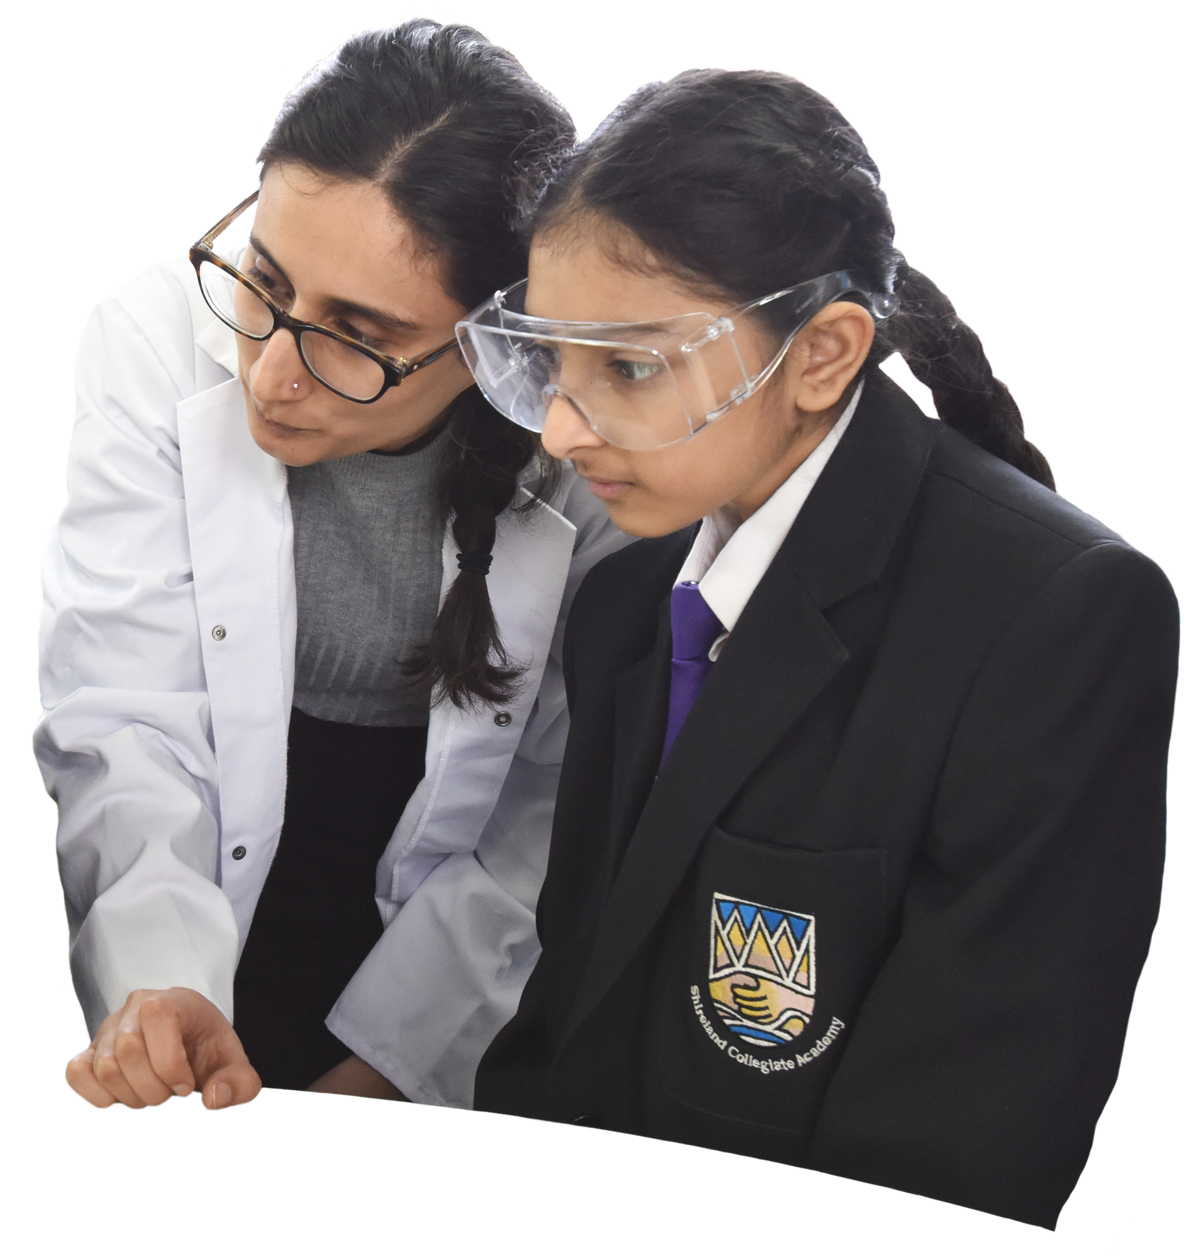 science teacher and student focusing